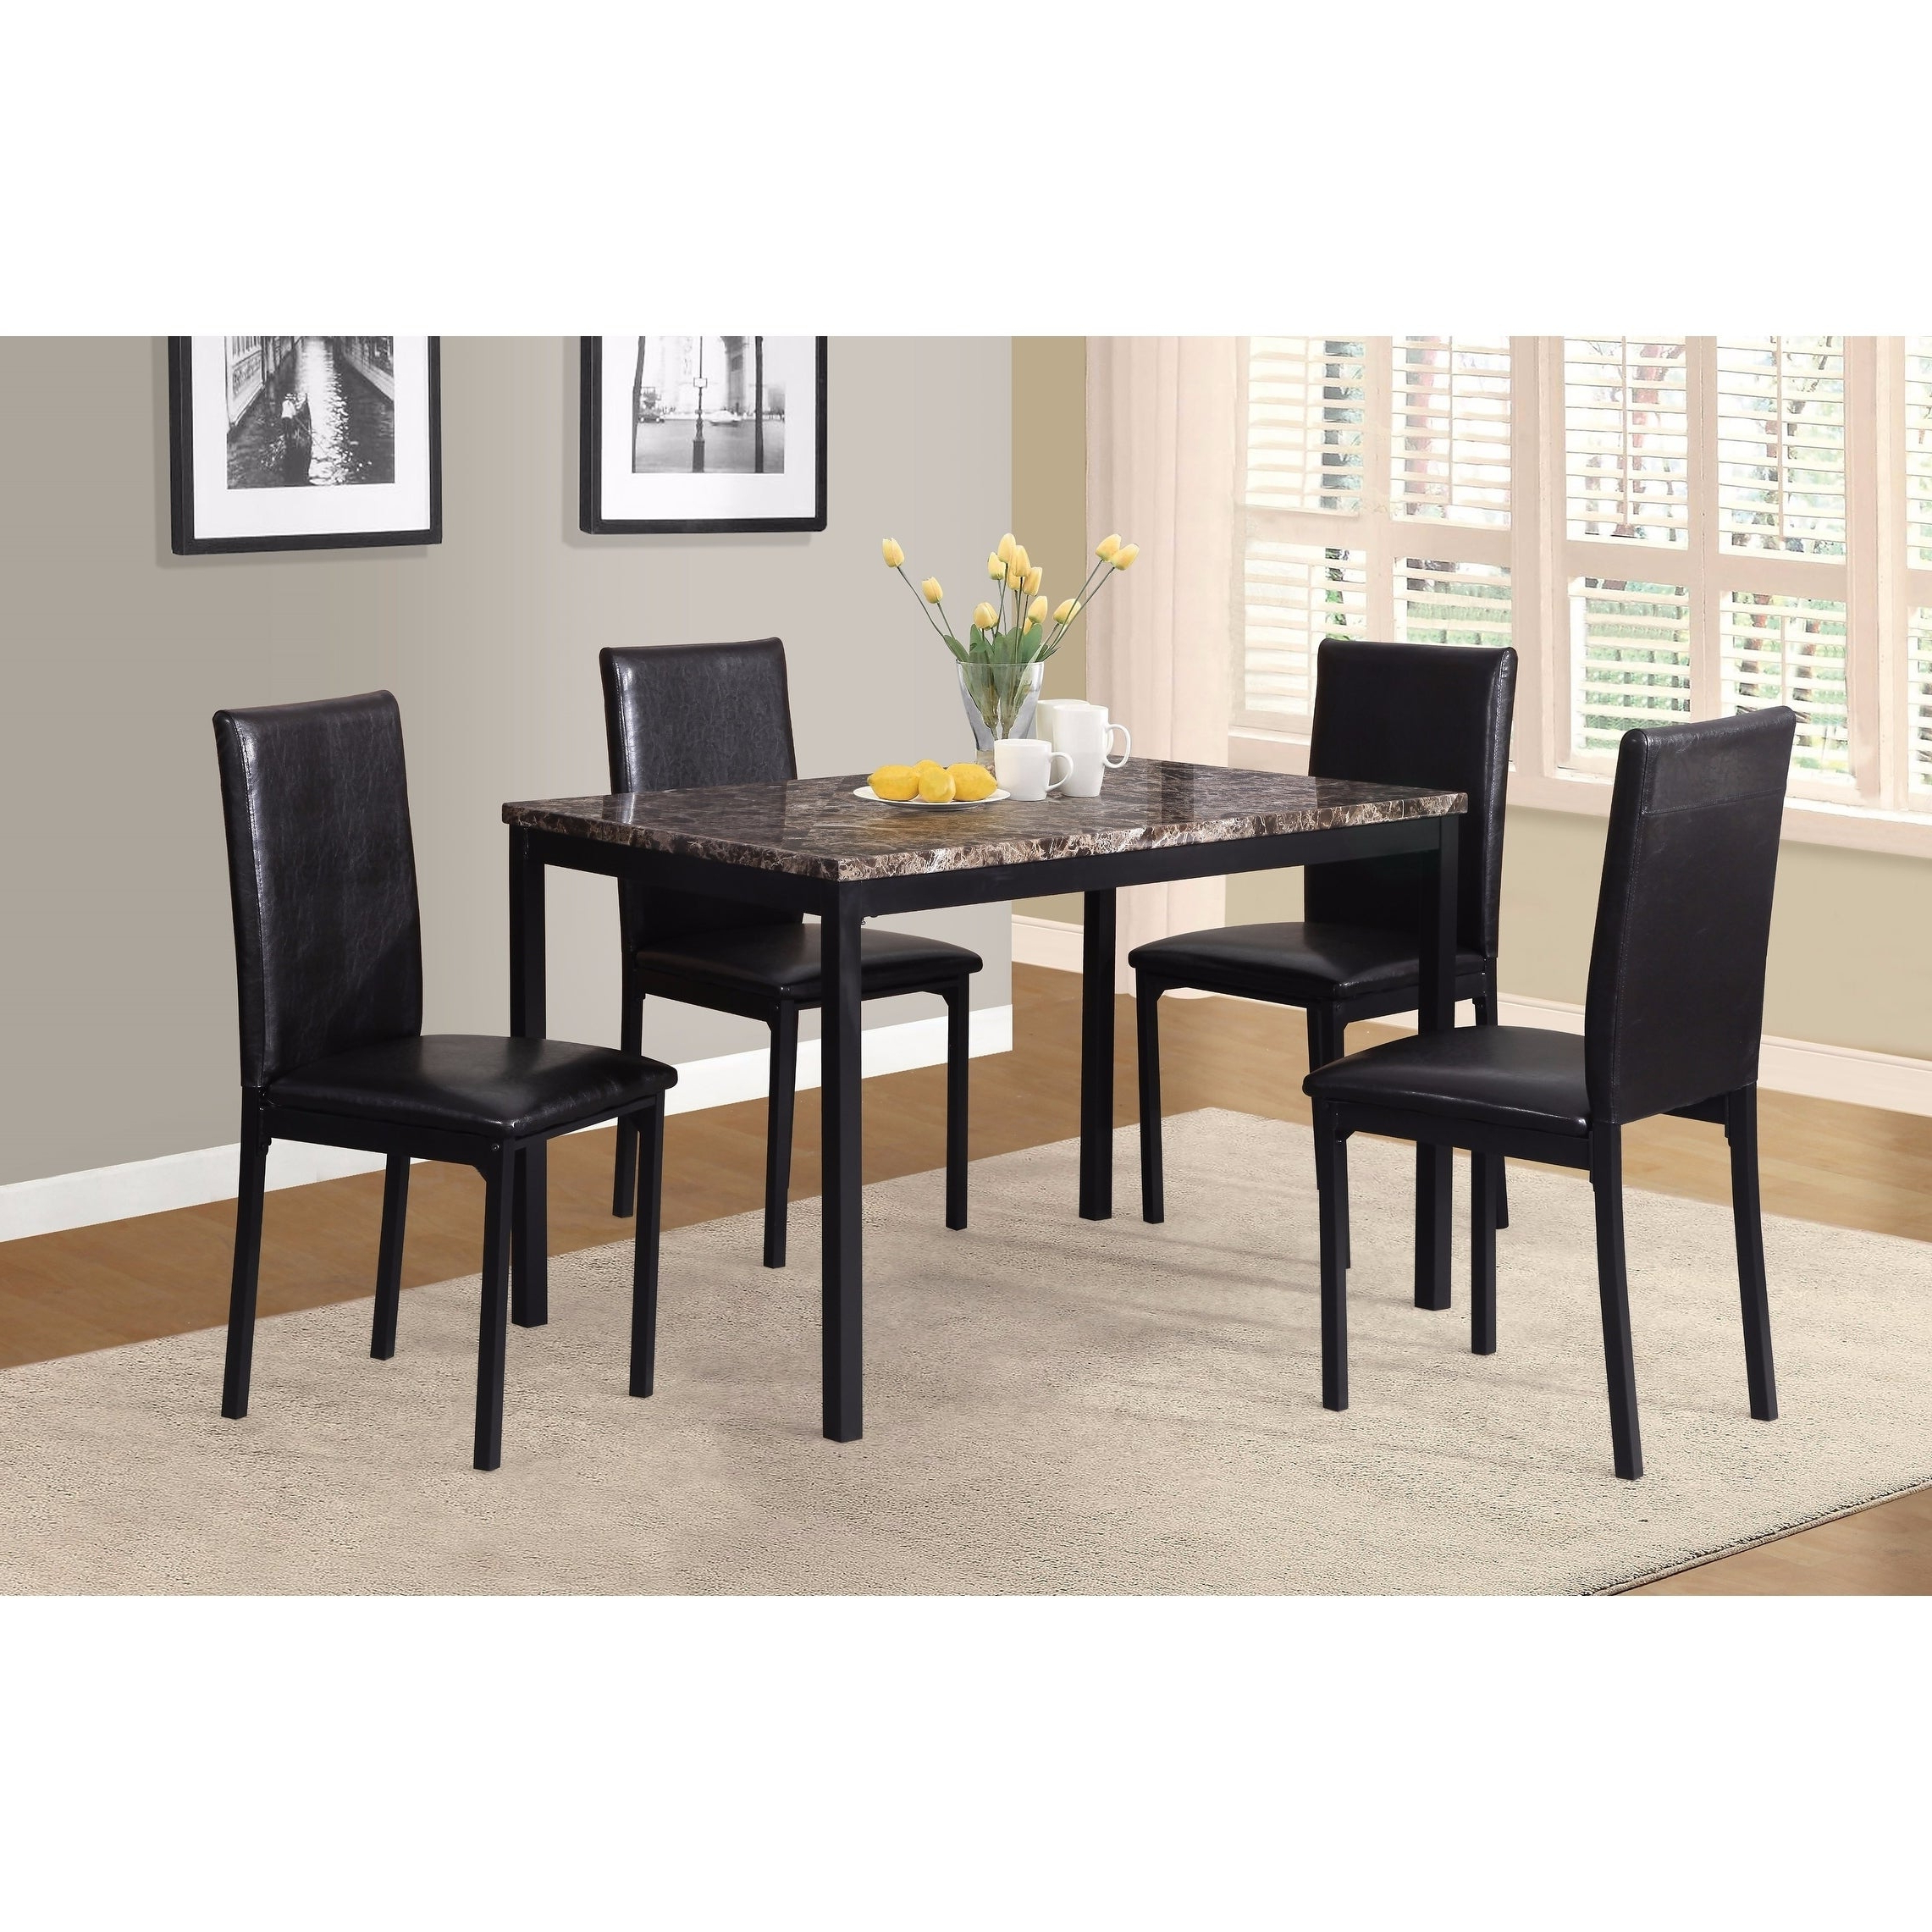 Noyes 5 Piece Dining Sets Within Best And Newest Noyes Metal Dining Table With Laminated Faux Marble Top – Black (View 14 of 20)